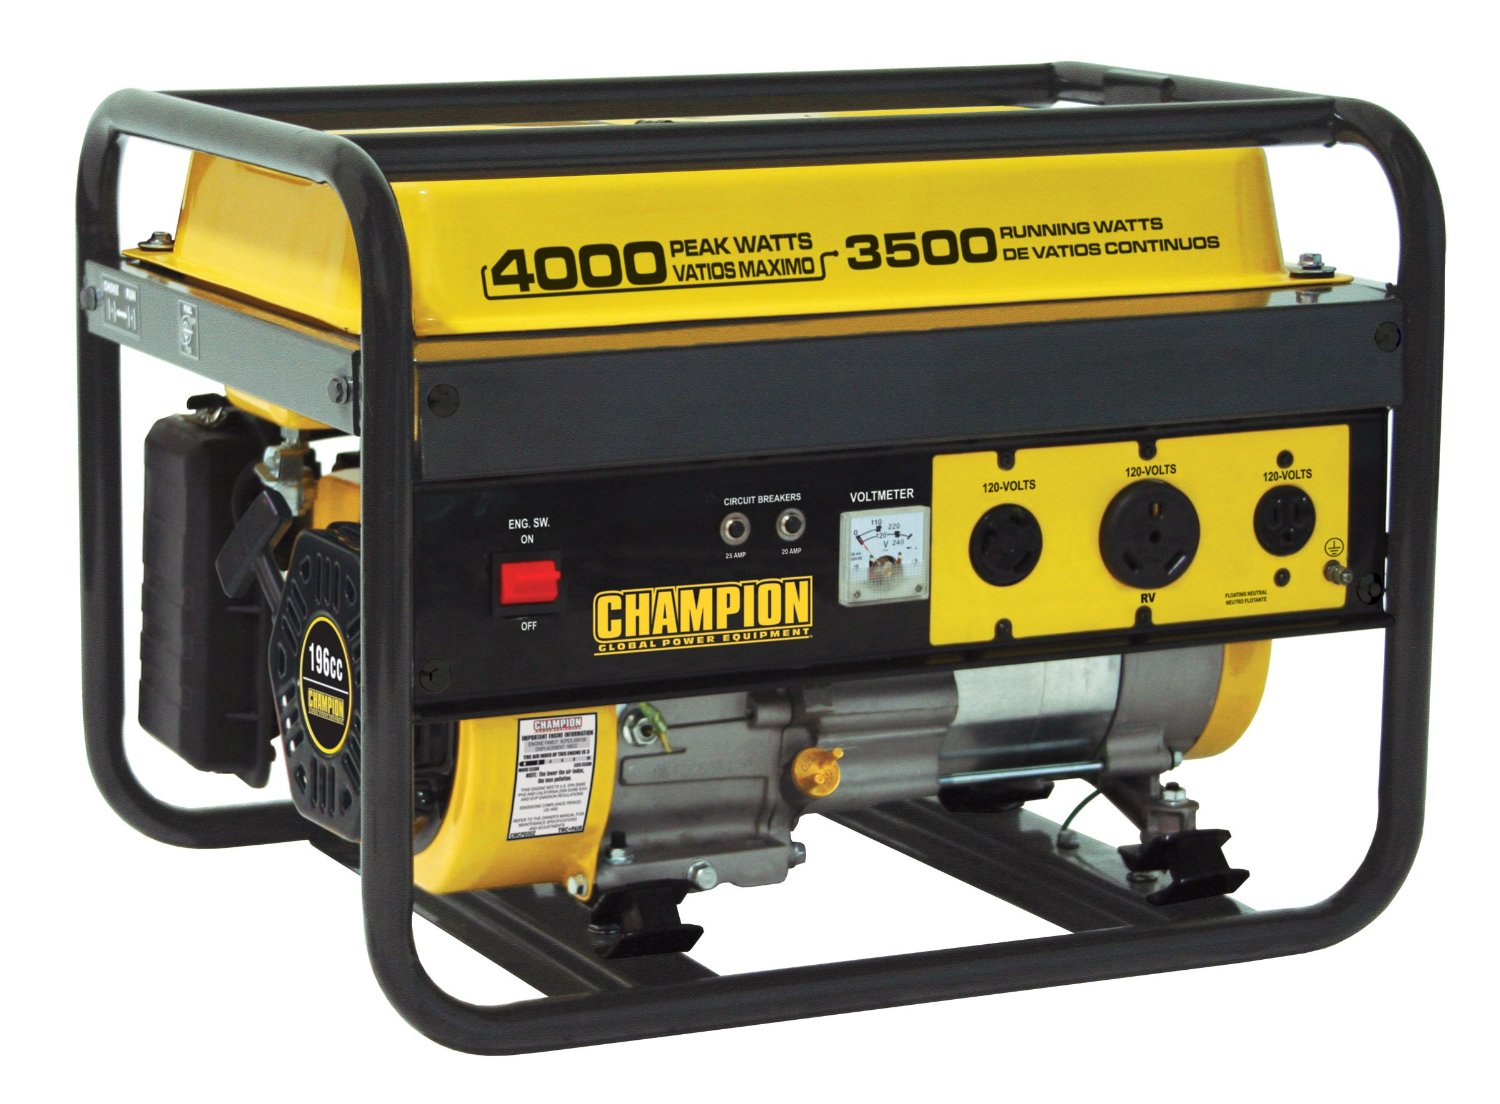 The Ideal Portable Electrical Power Generators